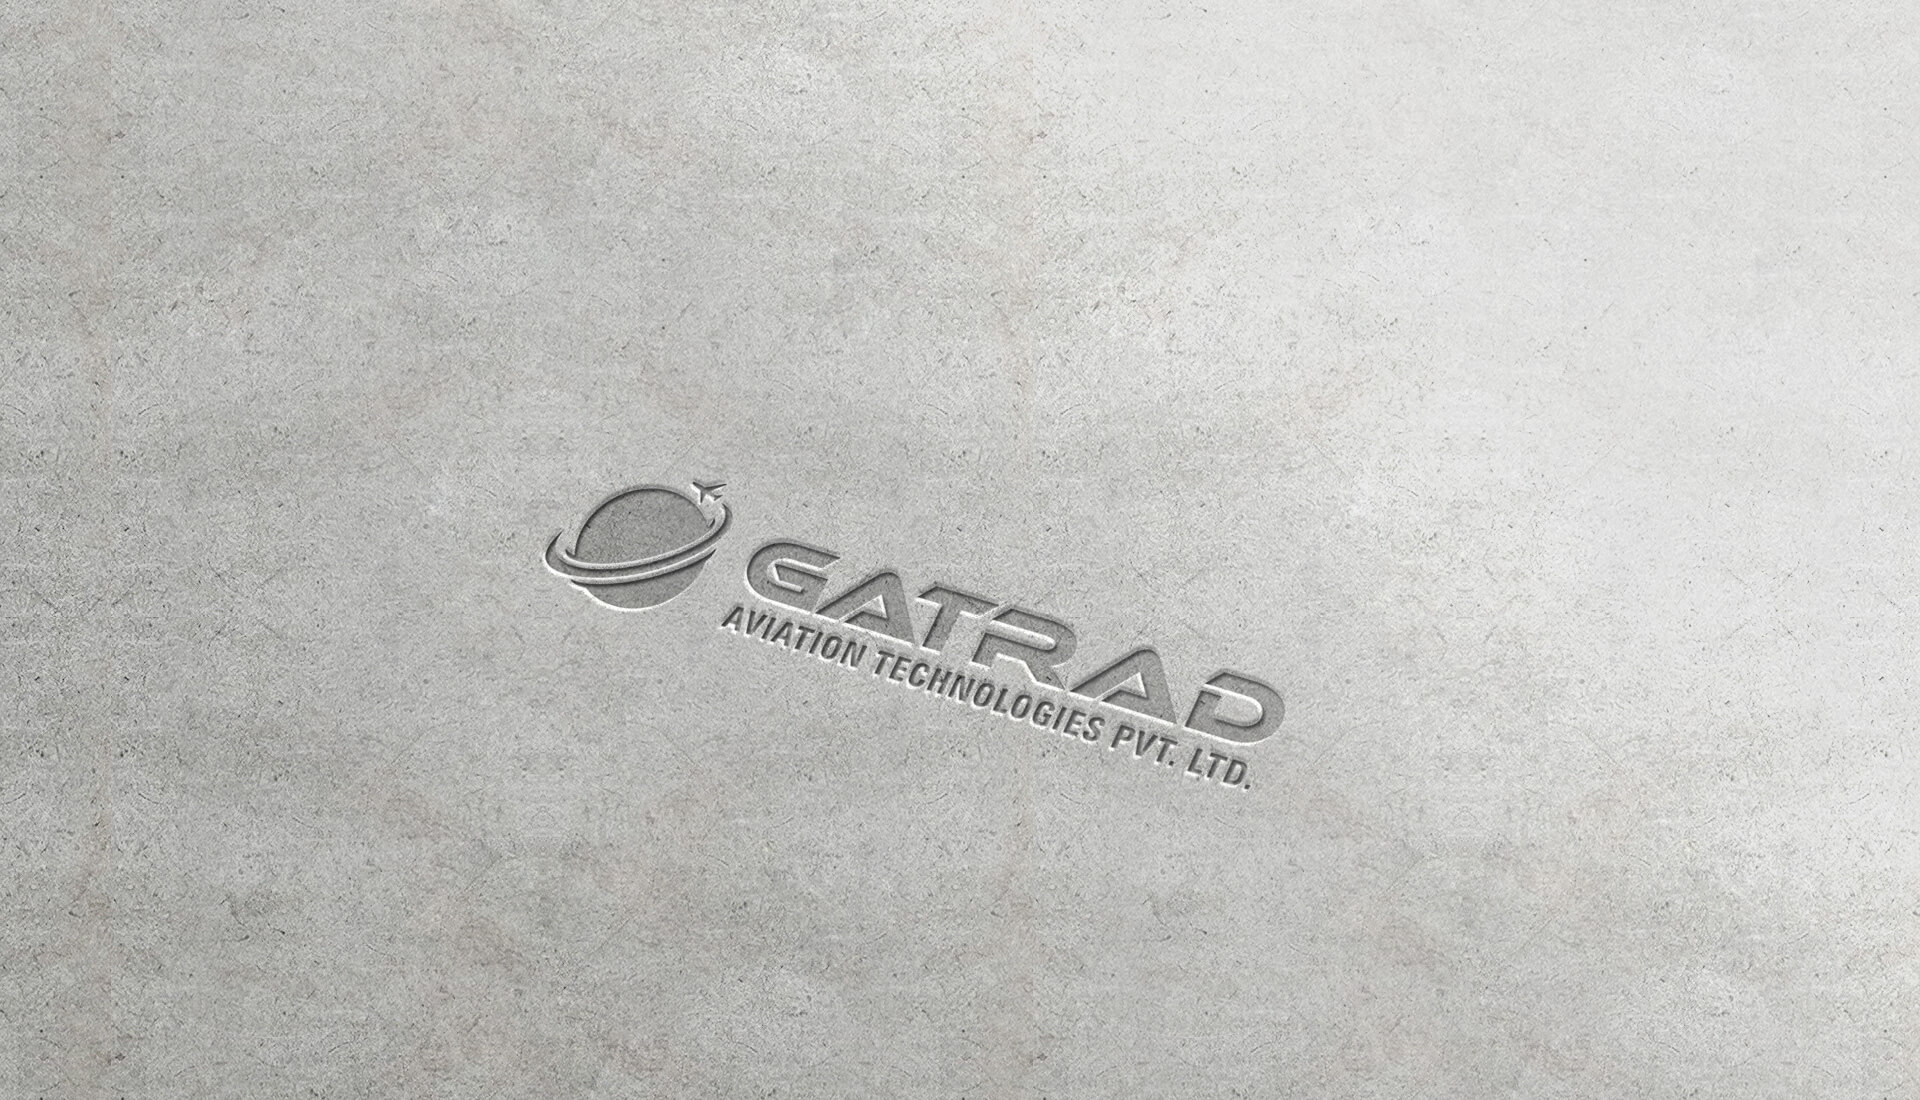 Gatrad Aviation Technologies